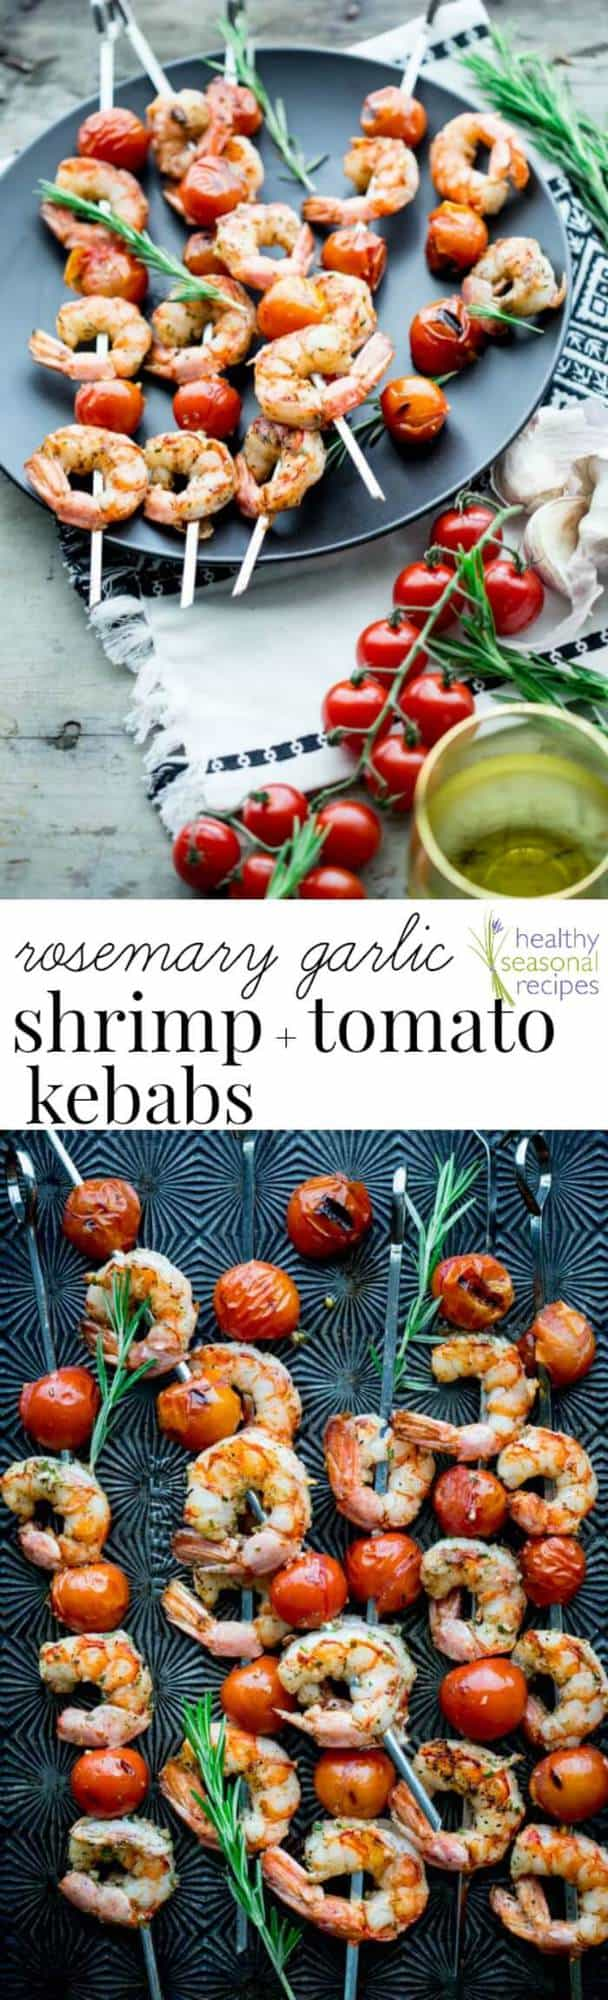 Nothing says summer like these rosemary shrimp and tomato kebabs. Fire up the grill this summer and enjoy these savory, buttery bites. Better yet, clean up is quick and easy! Great for weeknights with your family. Healthy Seasonal Recipes by Katie Webster | #summer #familyfriendly #kebab #savory #shrimp #tomato #quick #easy